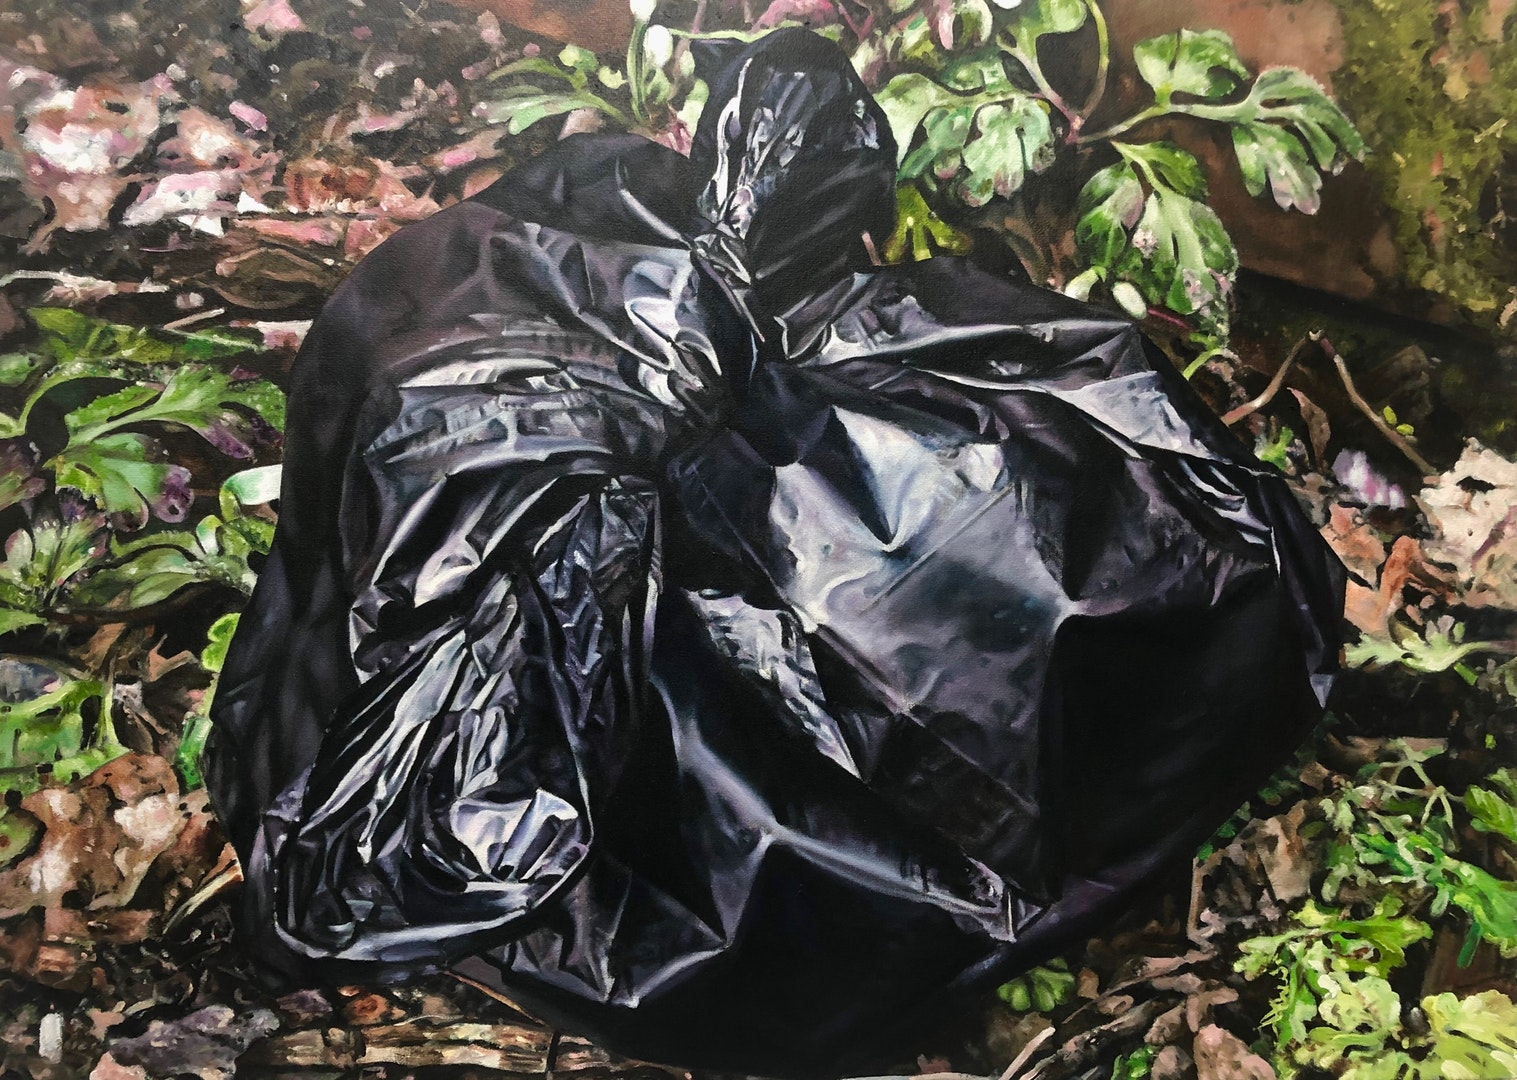 'Single Use', Christopher Campbell, Oil on canvas, 55 x 75 cm